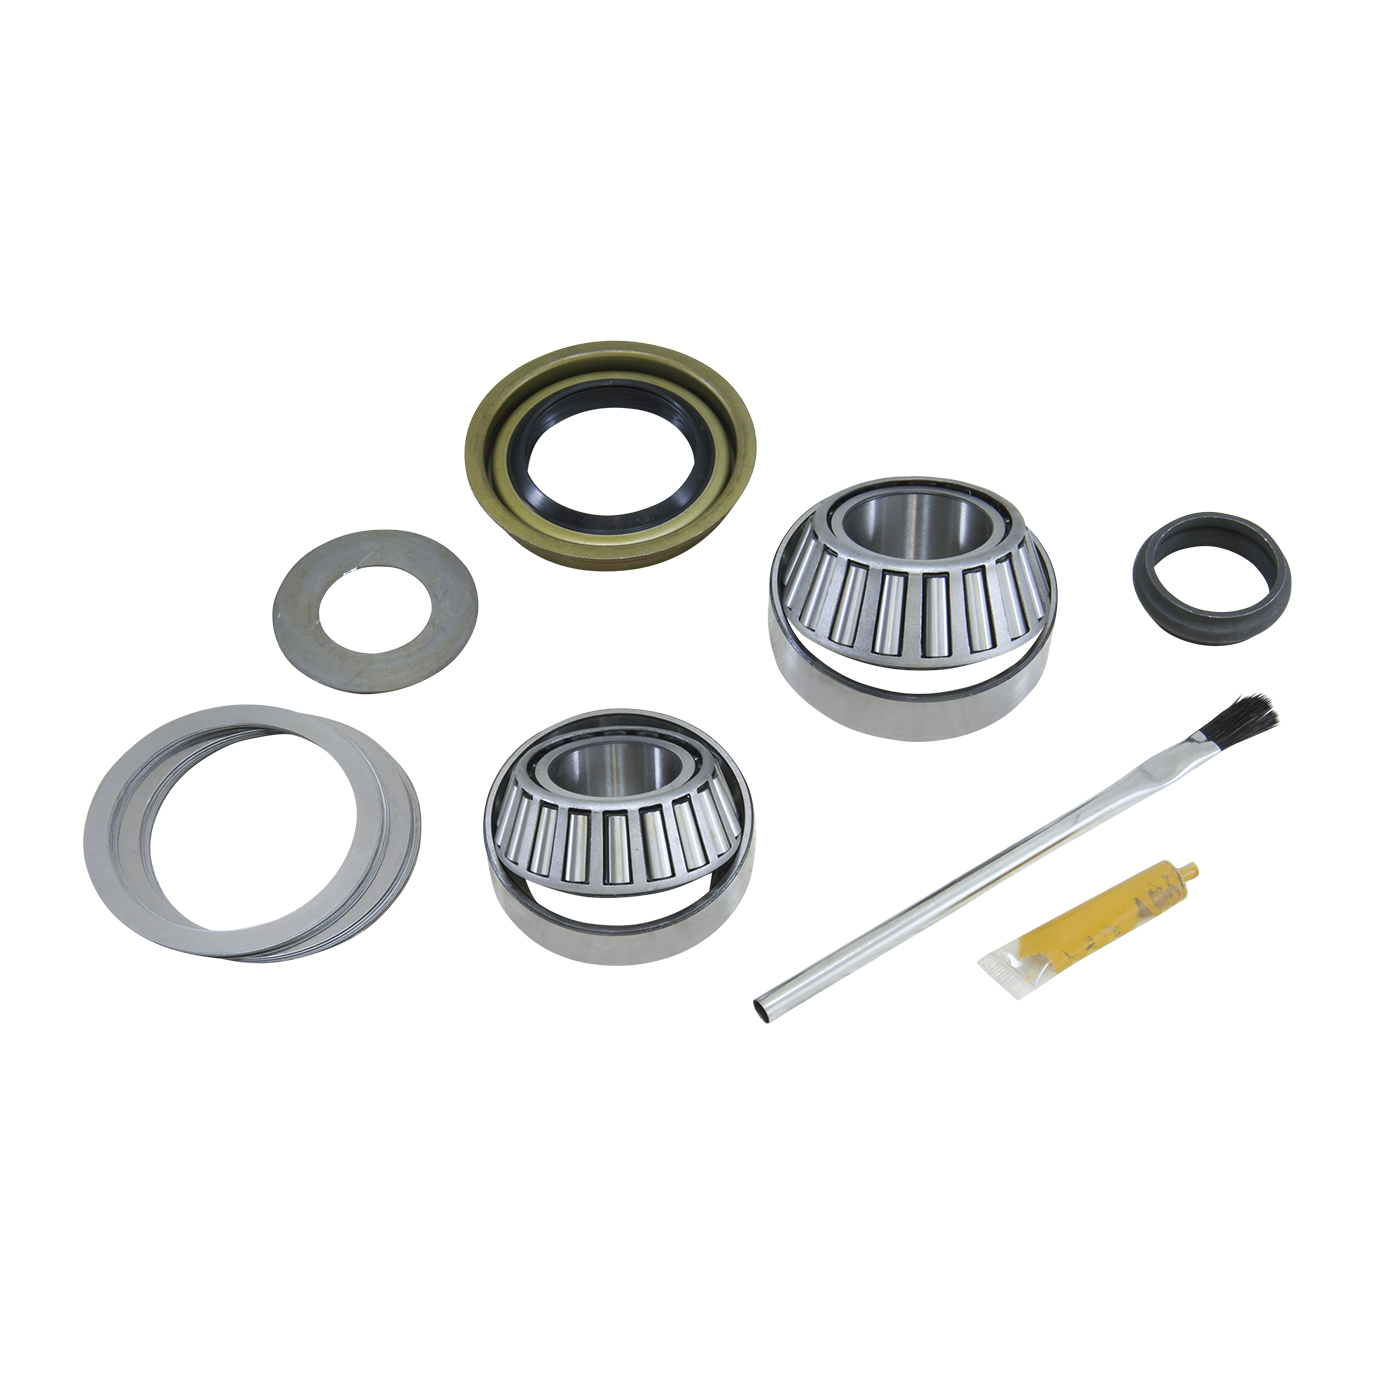 PK M35-IFS - Yukon Pinion install kit for Model 35 IFS differential for Explorer and Ranger